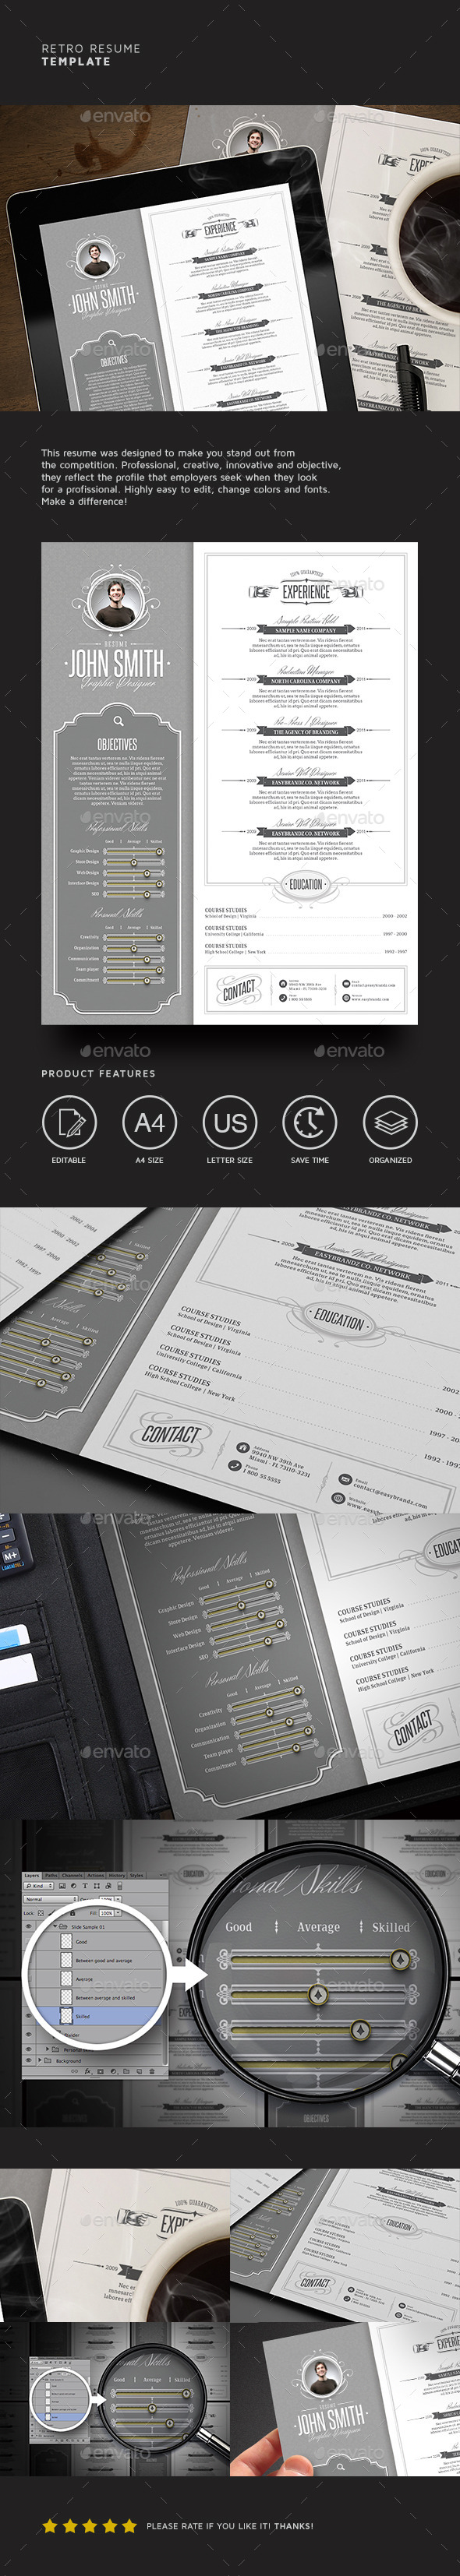 Retro Resume Template - Resumes Stationery